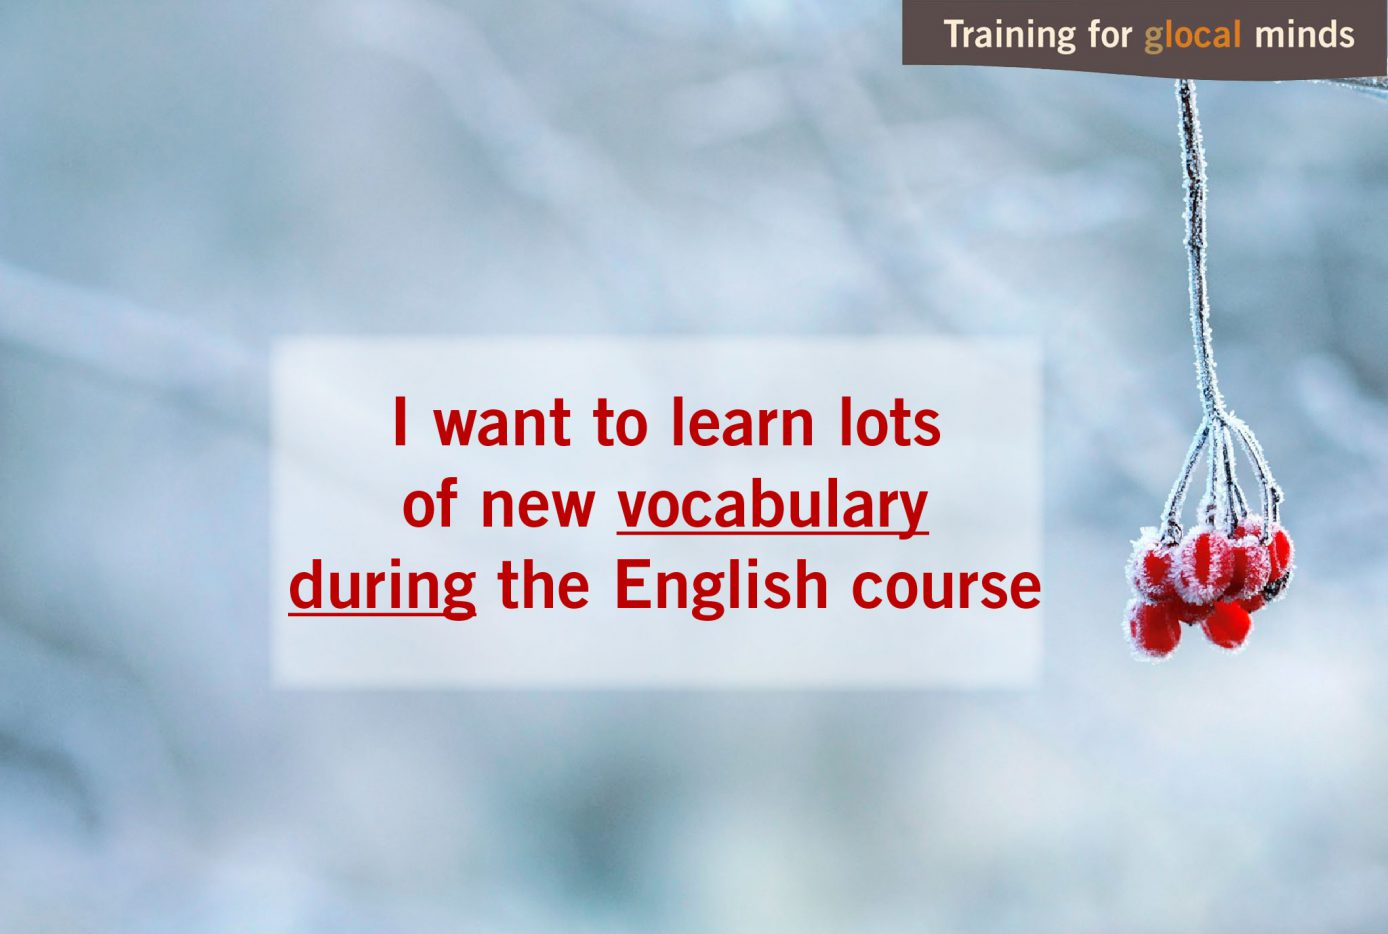 I want to learn lots of new vocabulary during the English course